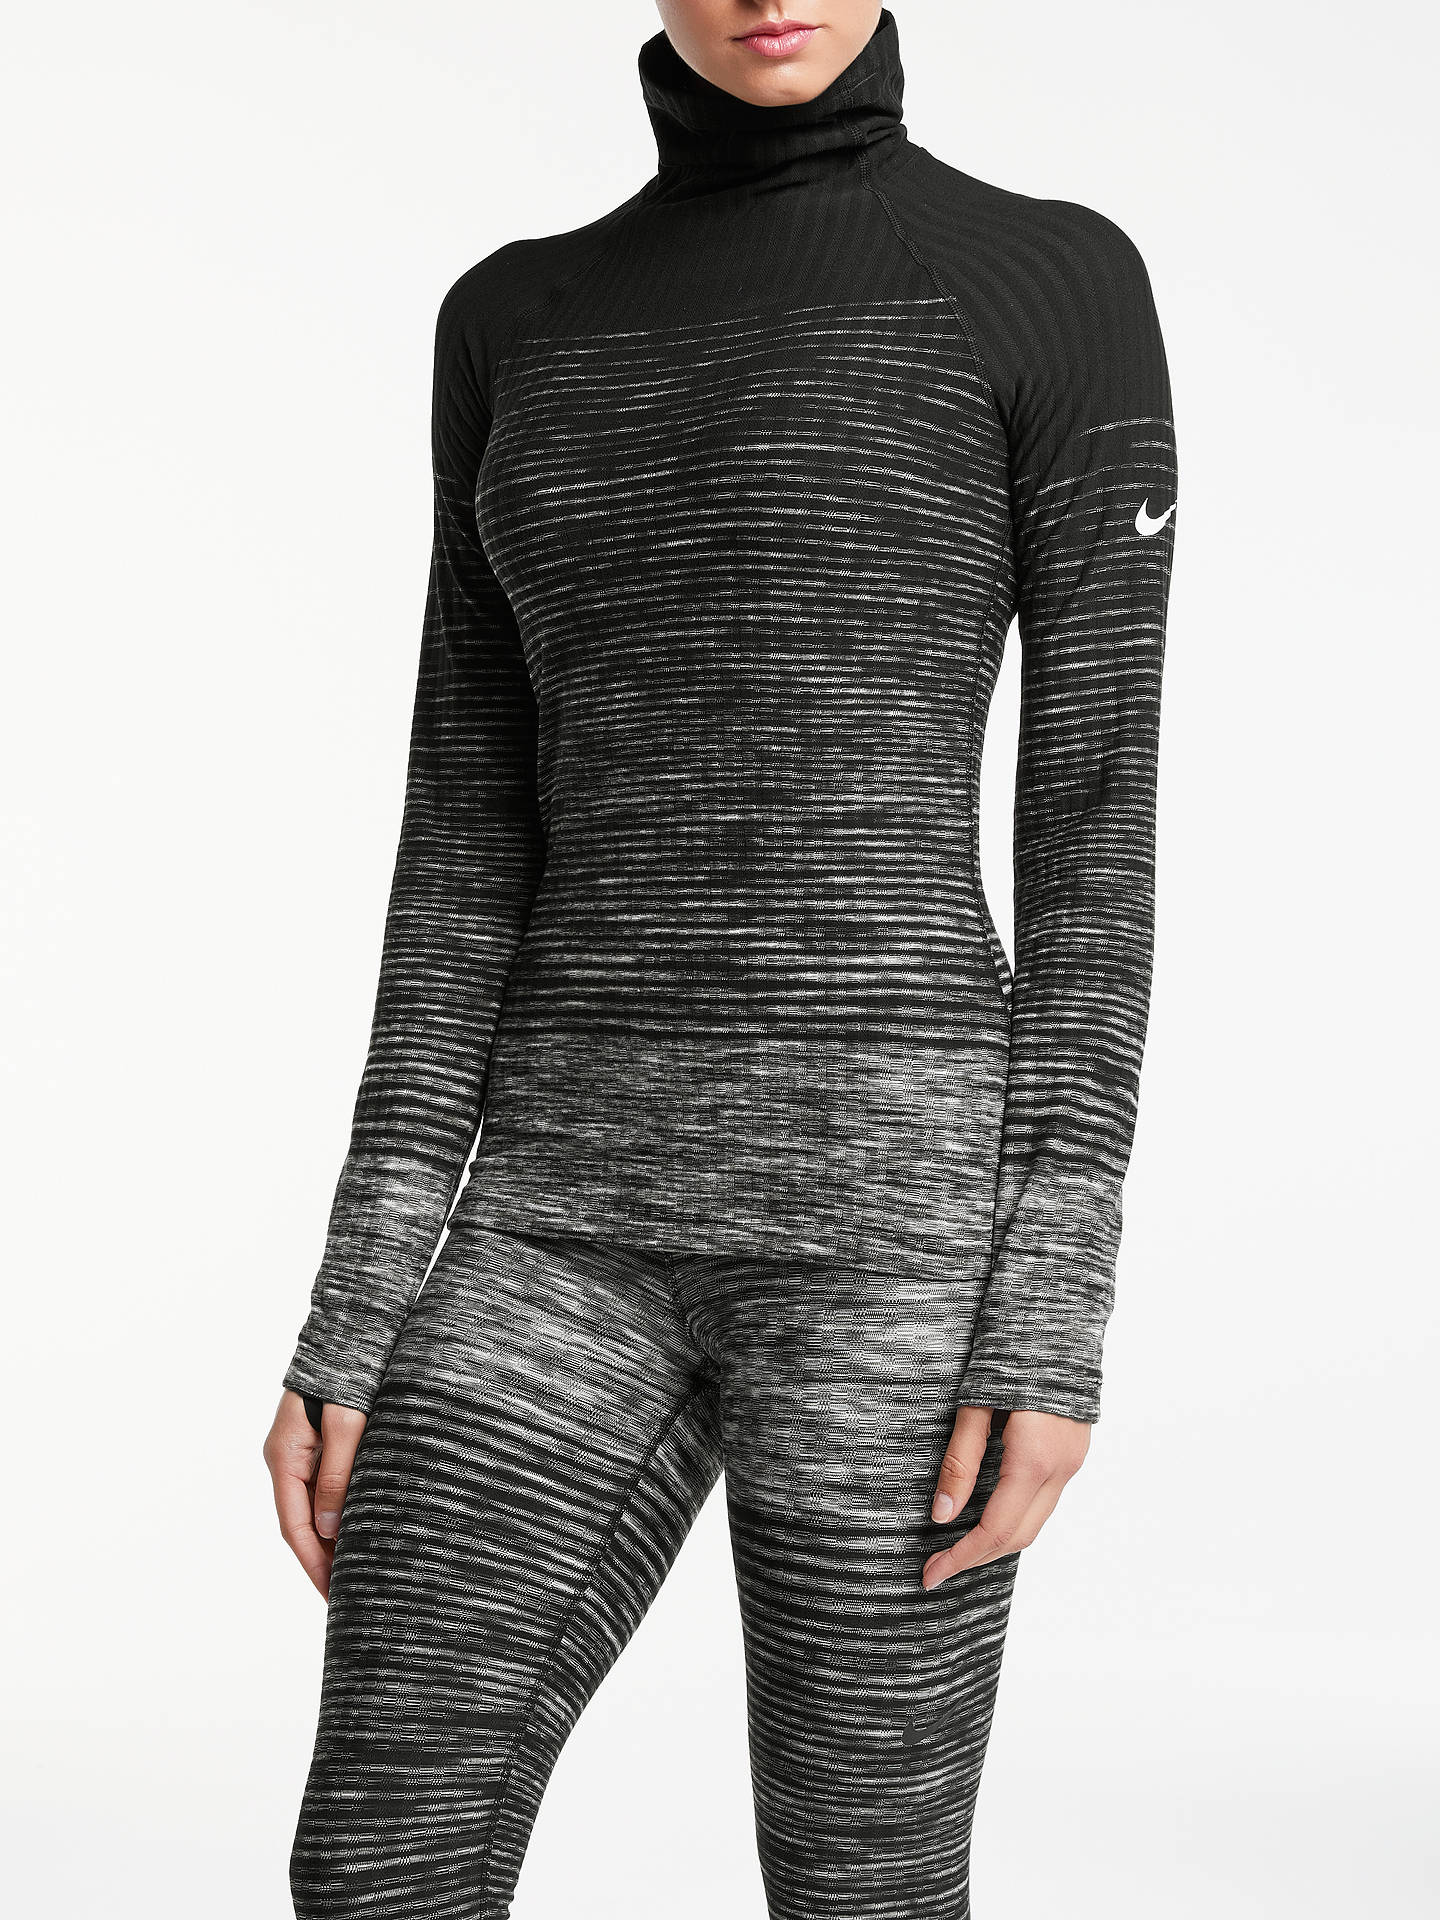 Moderne Nike Pro Hyperwarm Training Top, Dark Grey/White at John Lewis UC-15